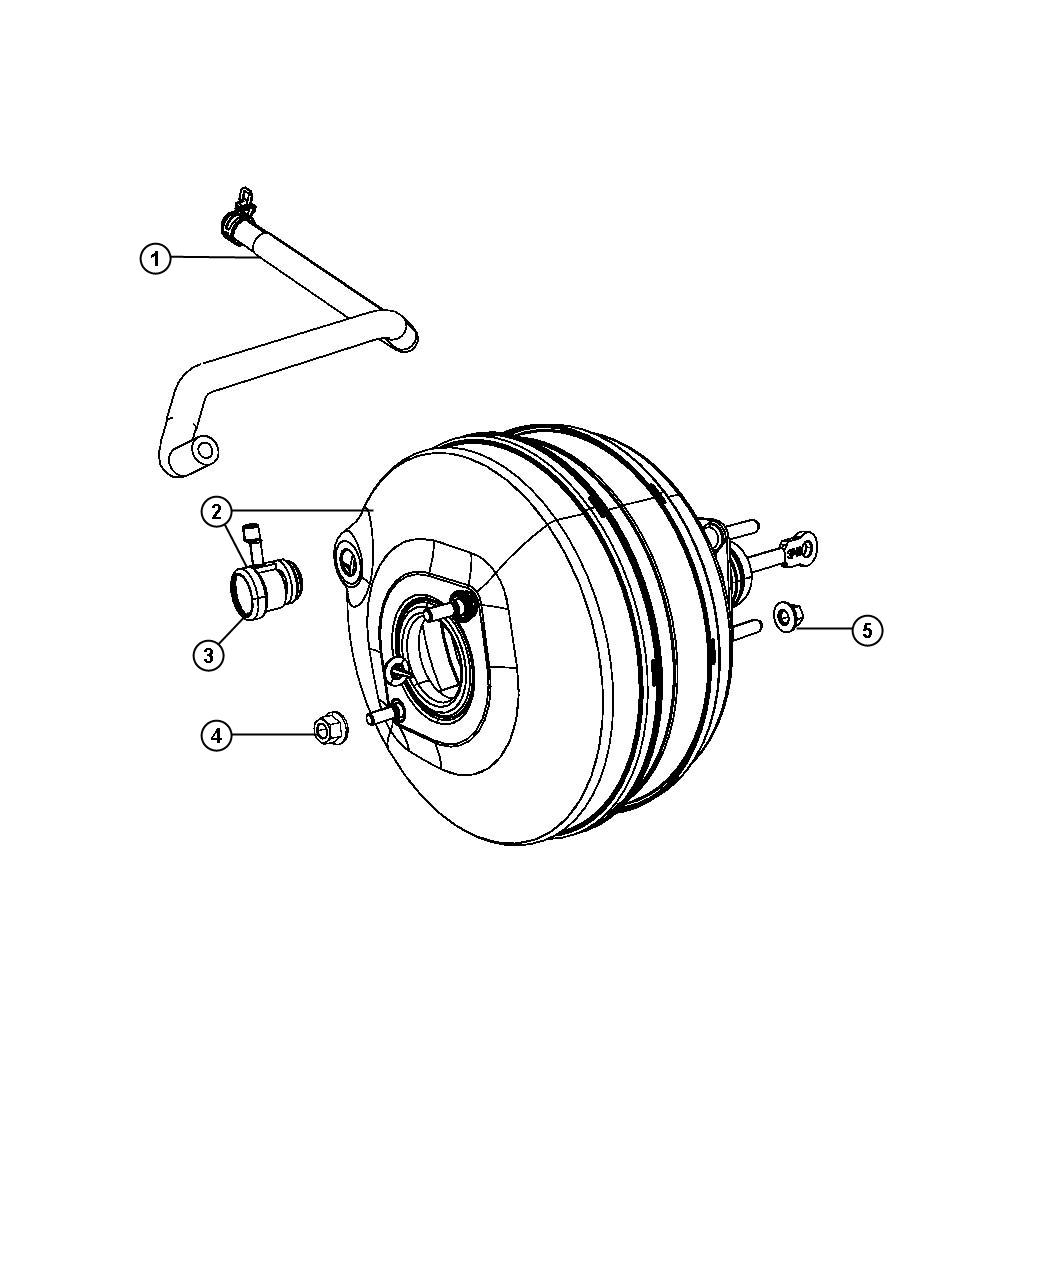 Dodge Ram Booster Power Brake Vehicles Built 9 11 09 And After Vehicles Built 9